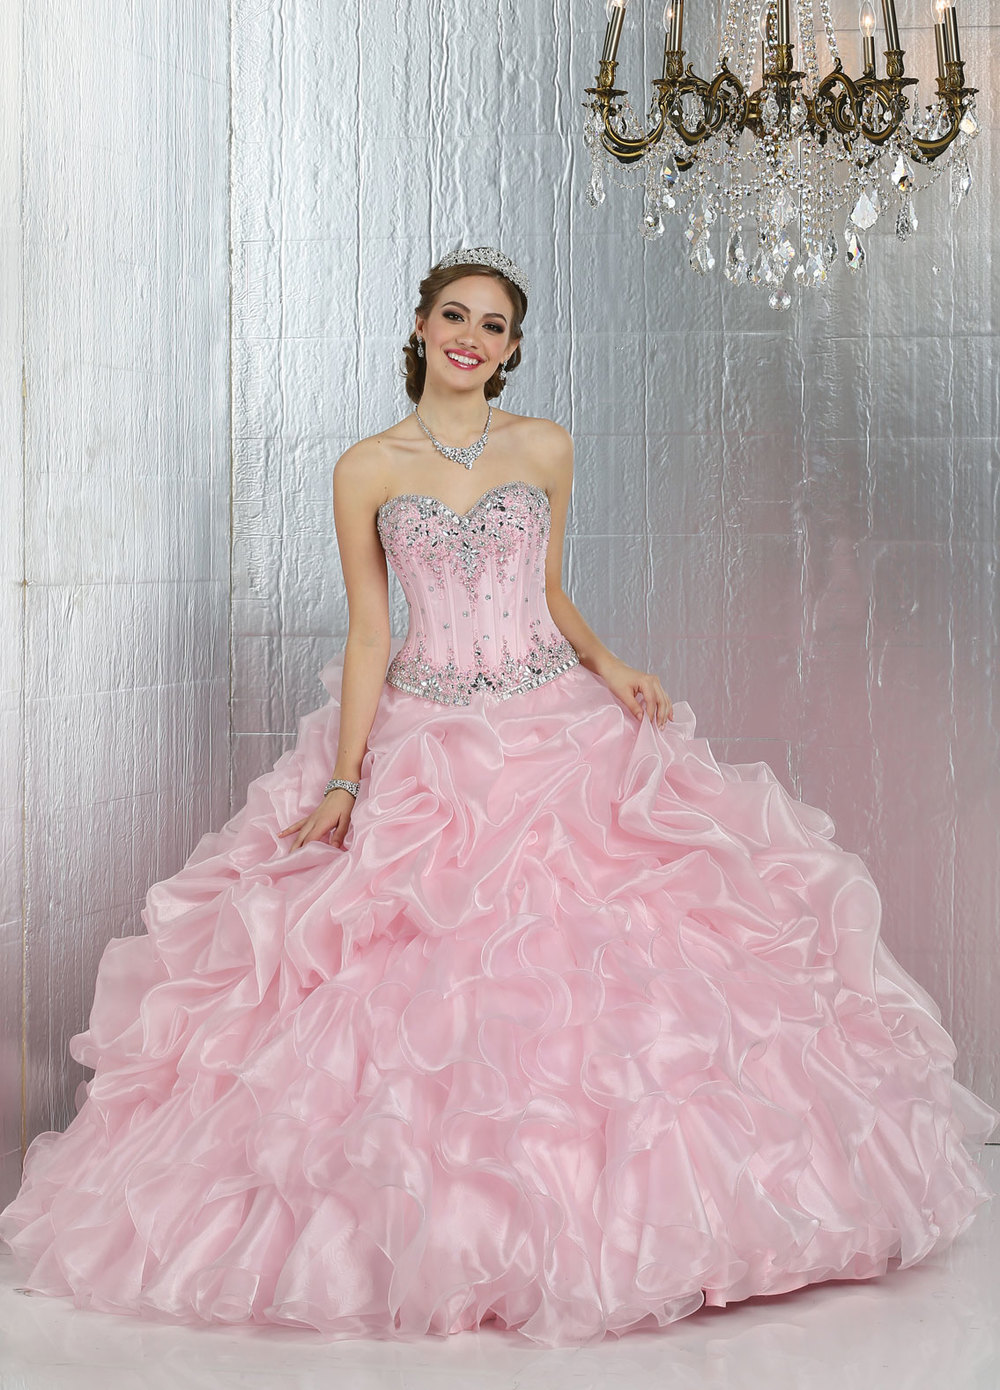 Gown and Picture by Q by DaVinci | Style 80279 | Color Pink | Two-piece Ballgown